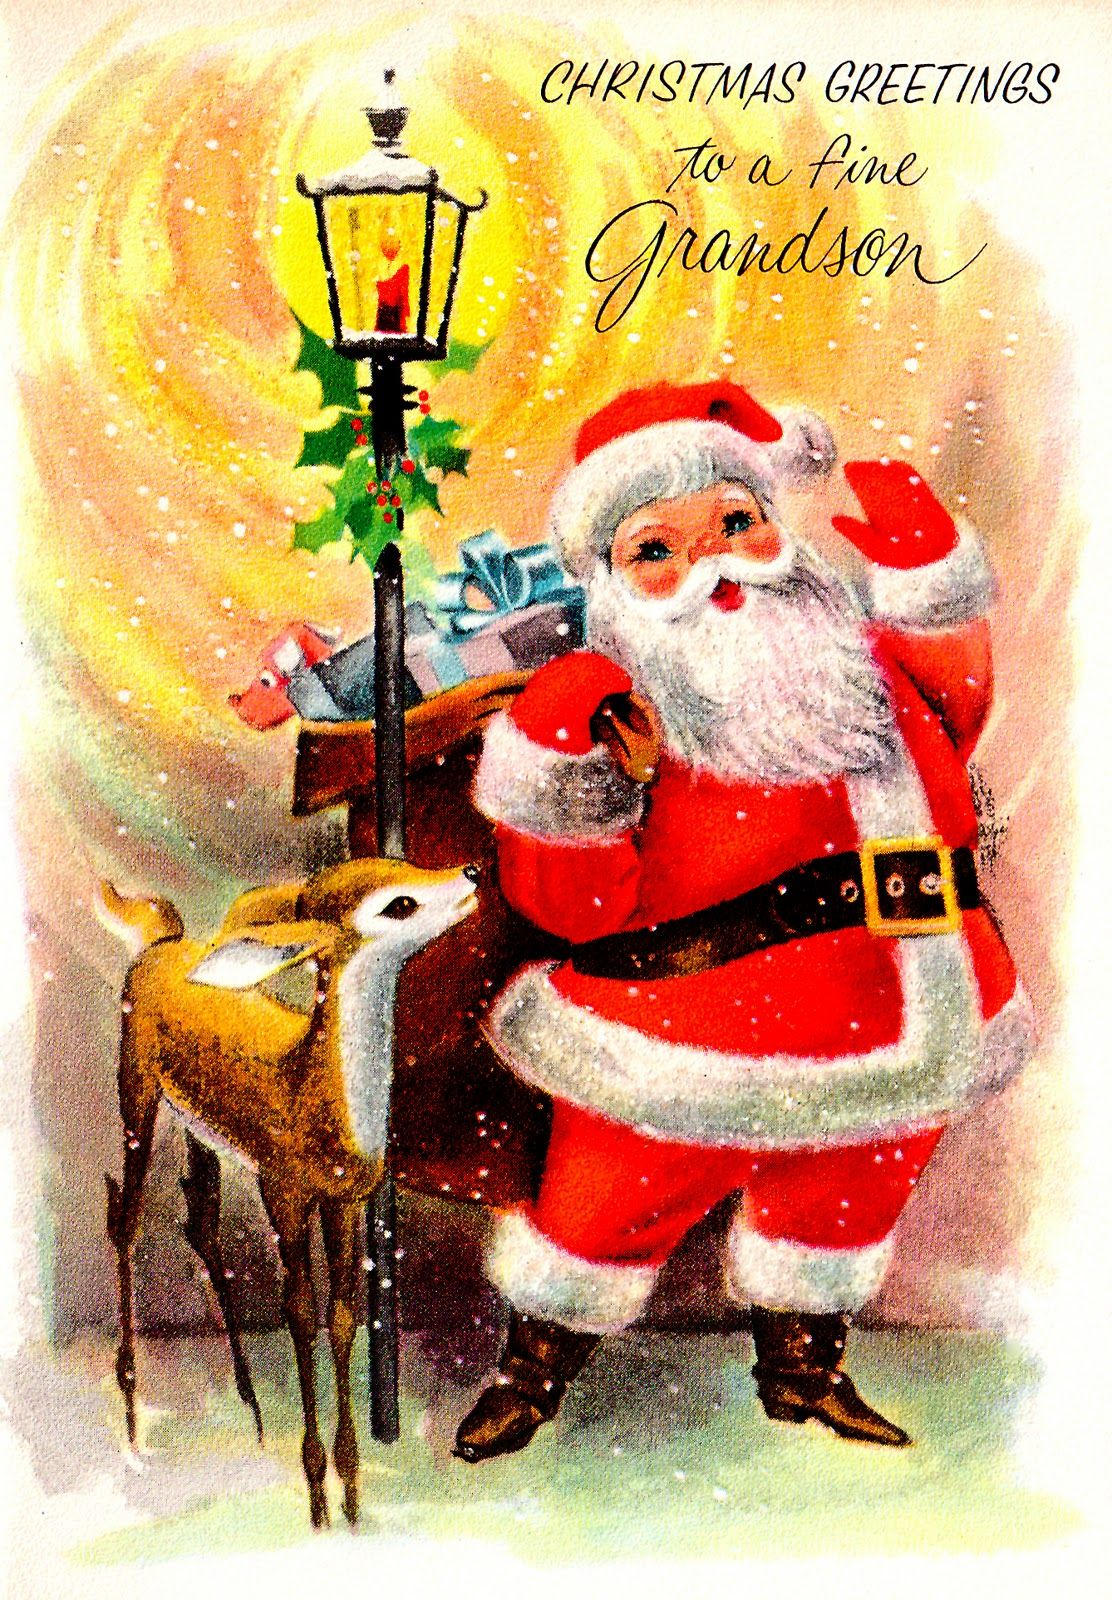 Auguri Di Natale Yahoo.Vintage Christmas Card Images Windows Yahoo Image Search Results Vintage Christmas Cards Christmas Card Images Vintage Christmas Greeting Cards